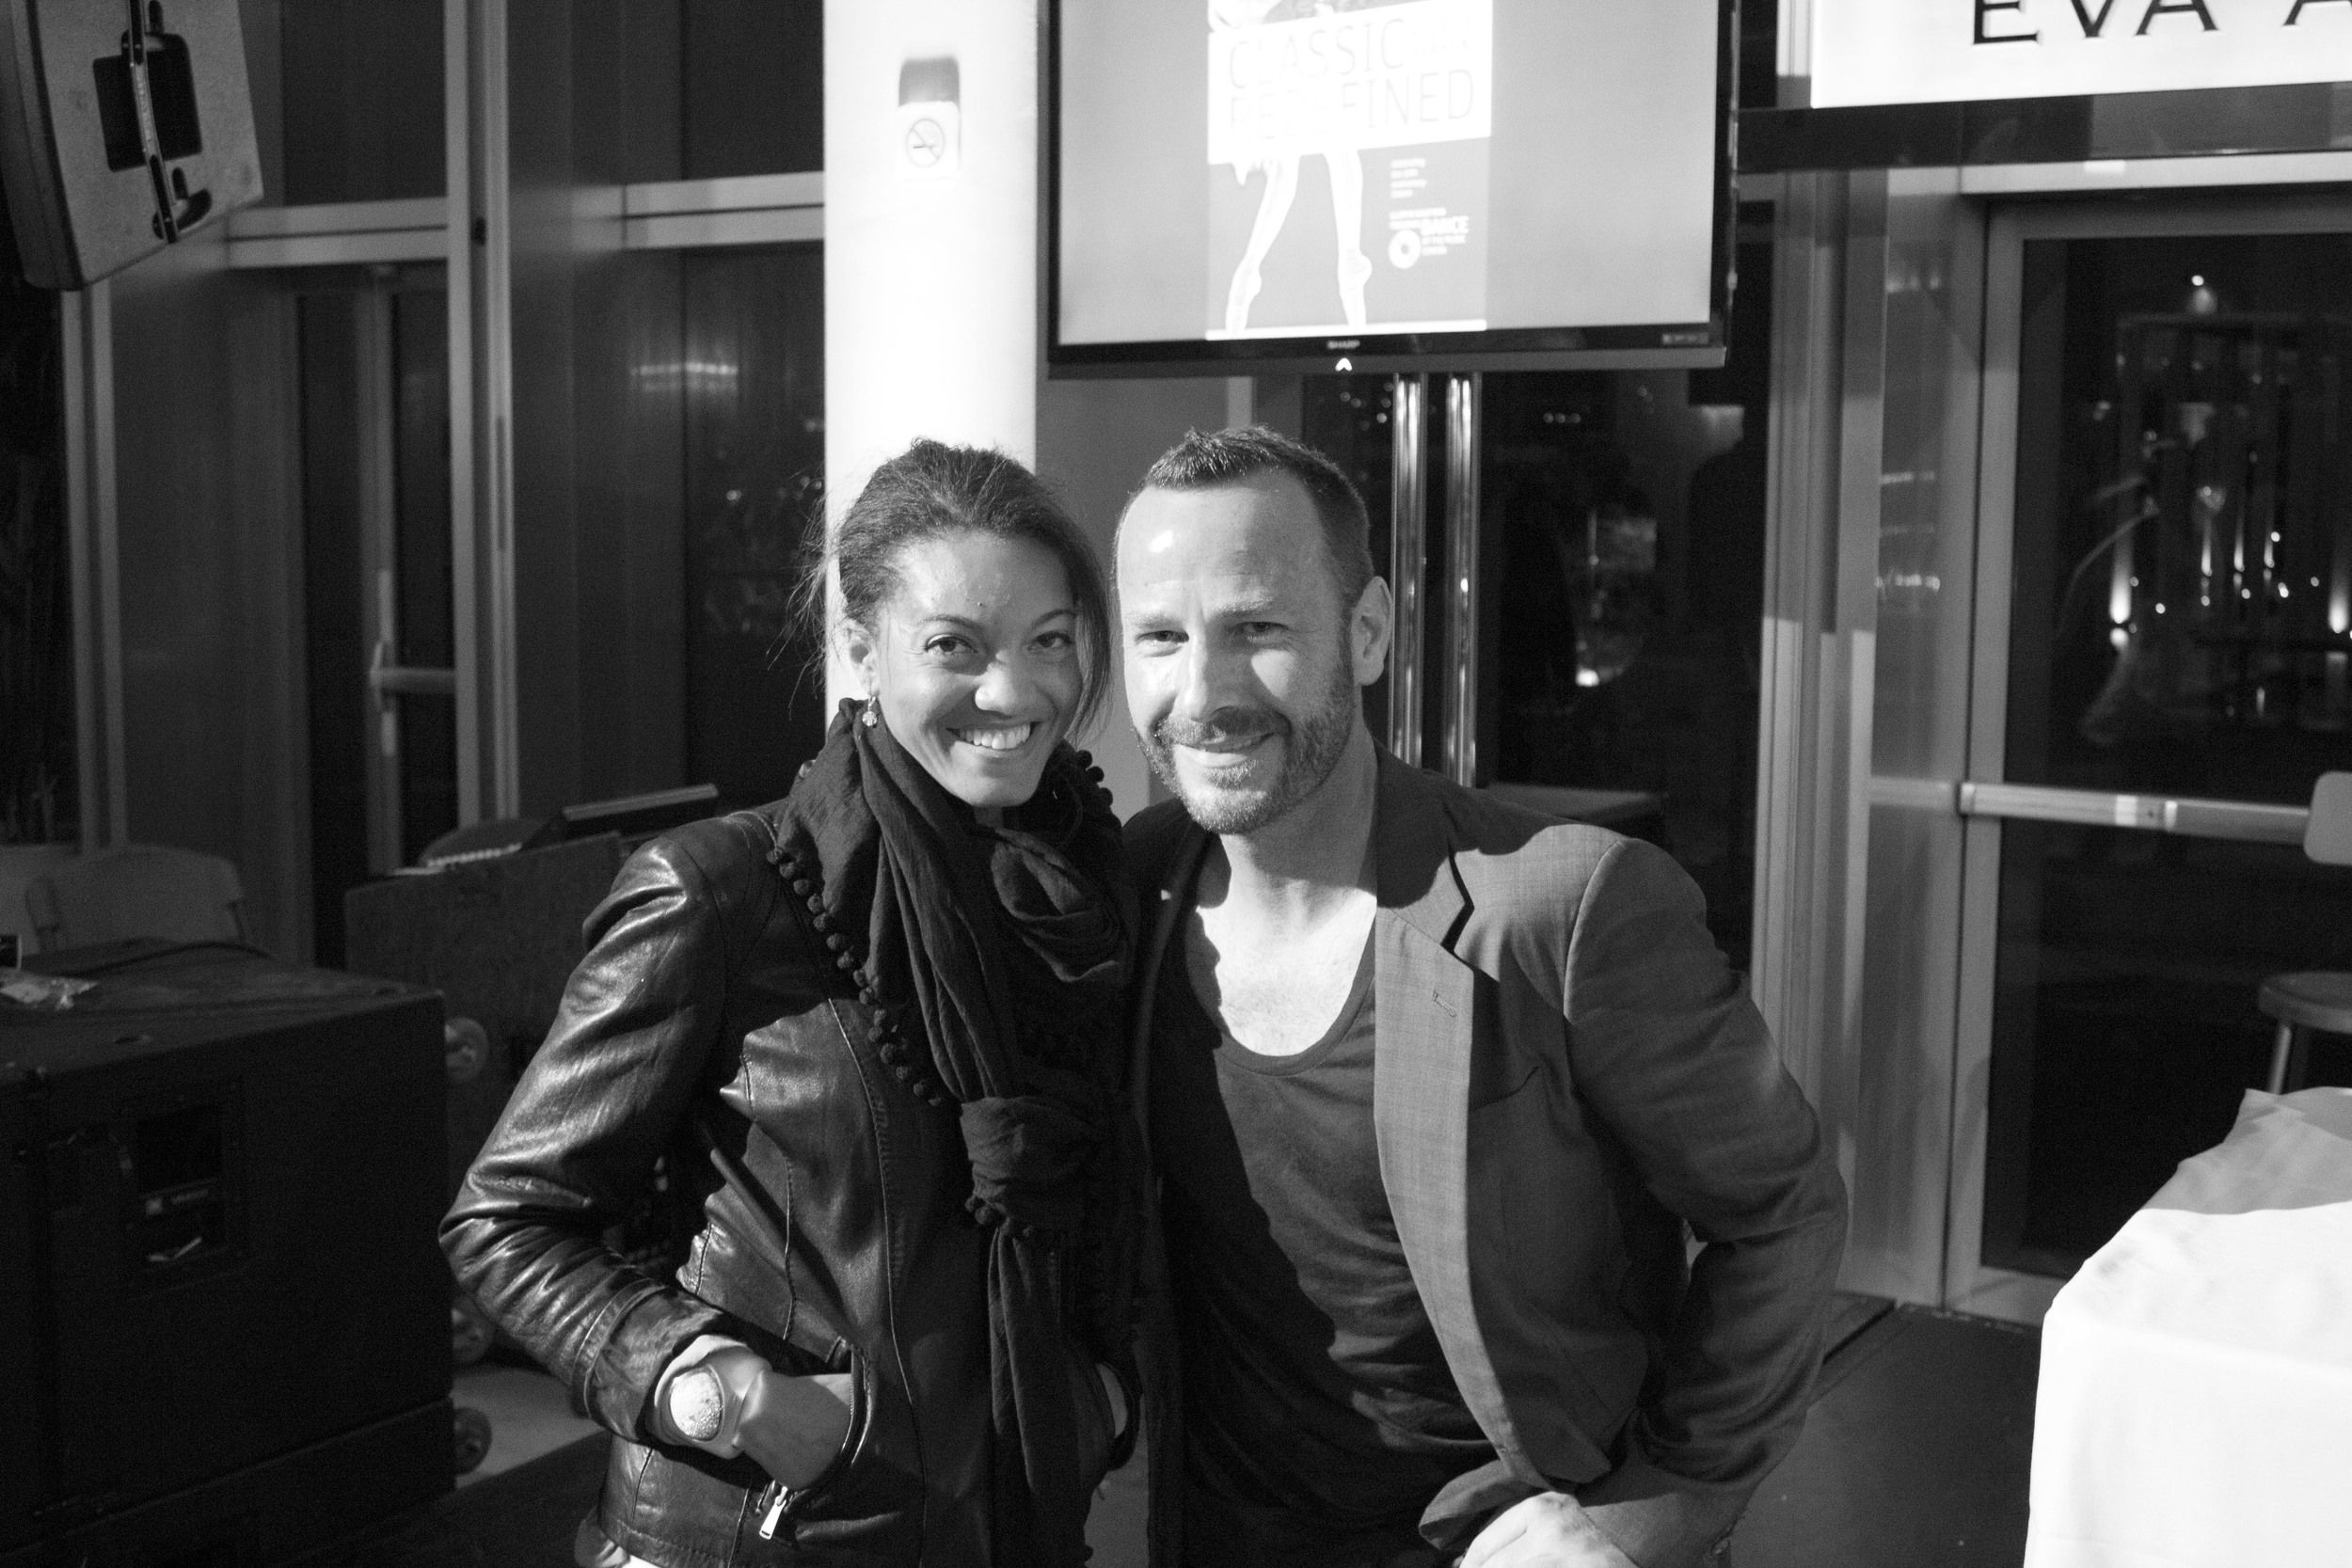 Traces post-performance party. Monica with KCRW's Music Director Jason Bentley at the Music Center.